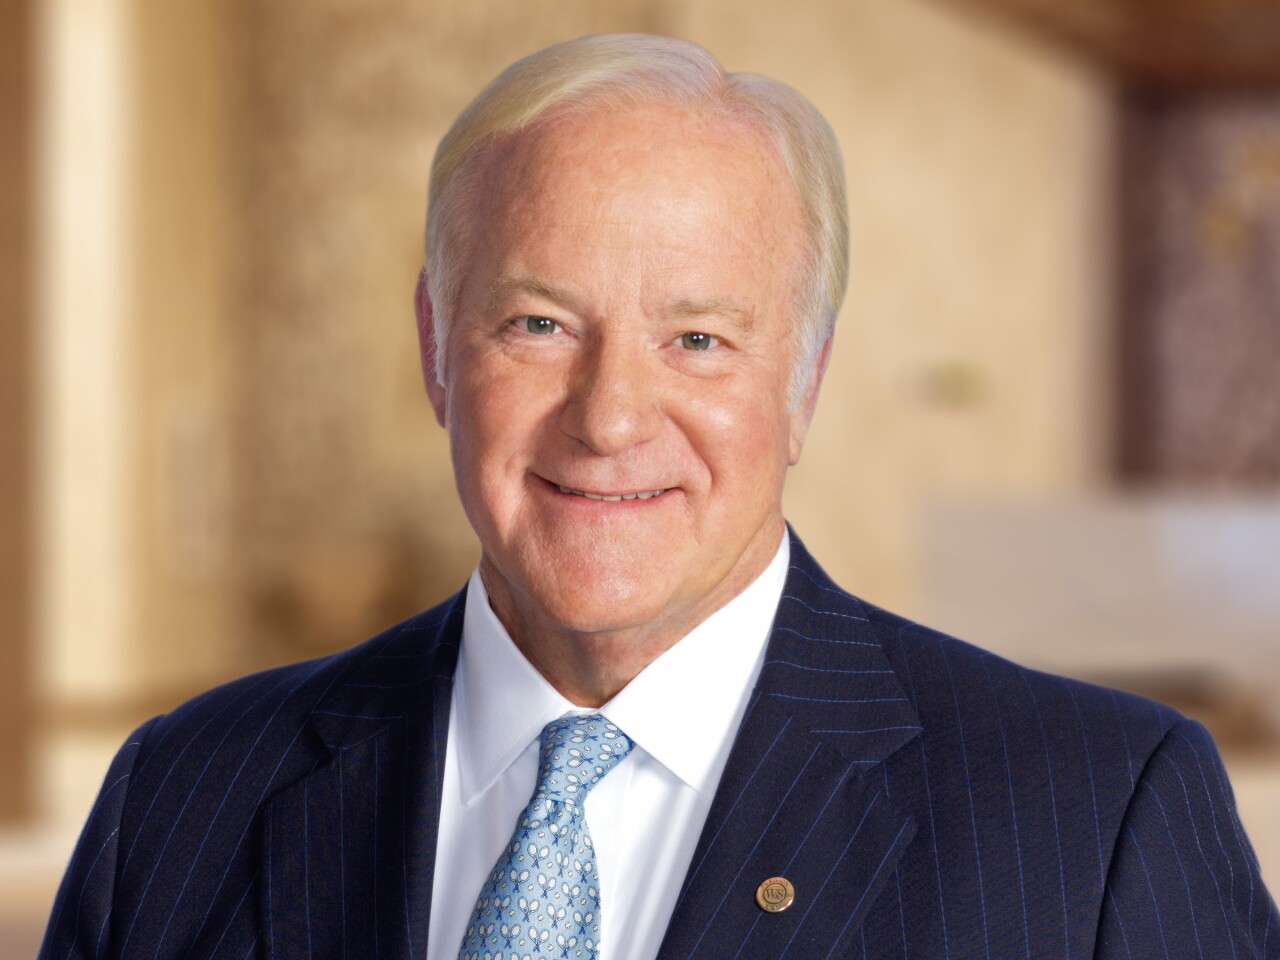 Western & Southern Financial Group CEO John Barrett is smiling in this photo. He has short white hair and is wearing a pale blue patterned tie, a white shirt and a navy pinstripe suit jacket.